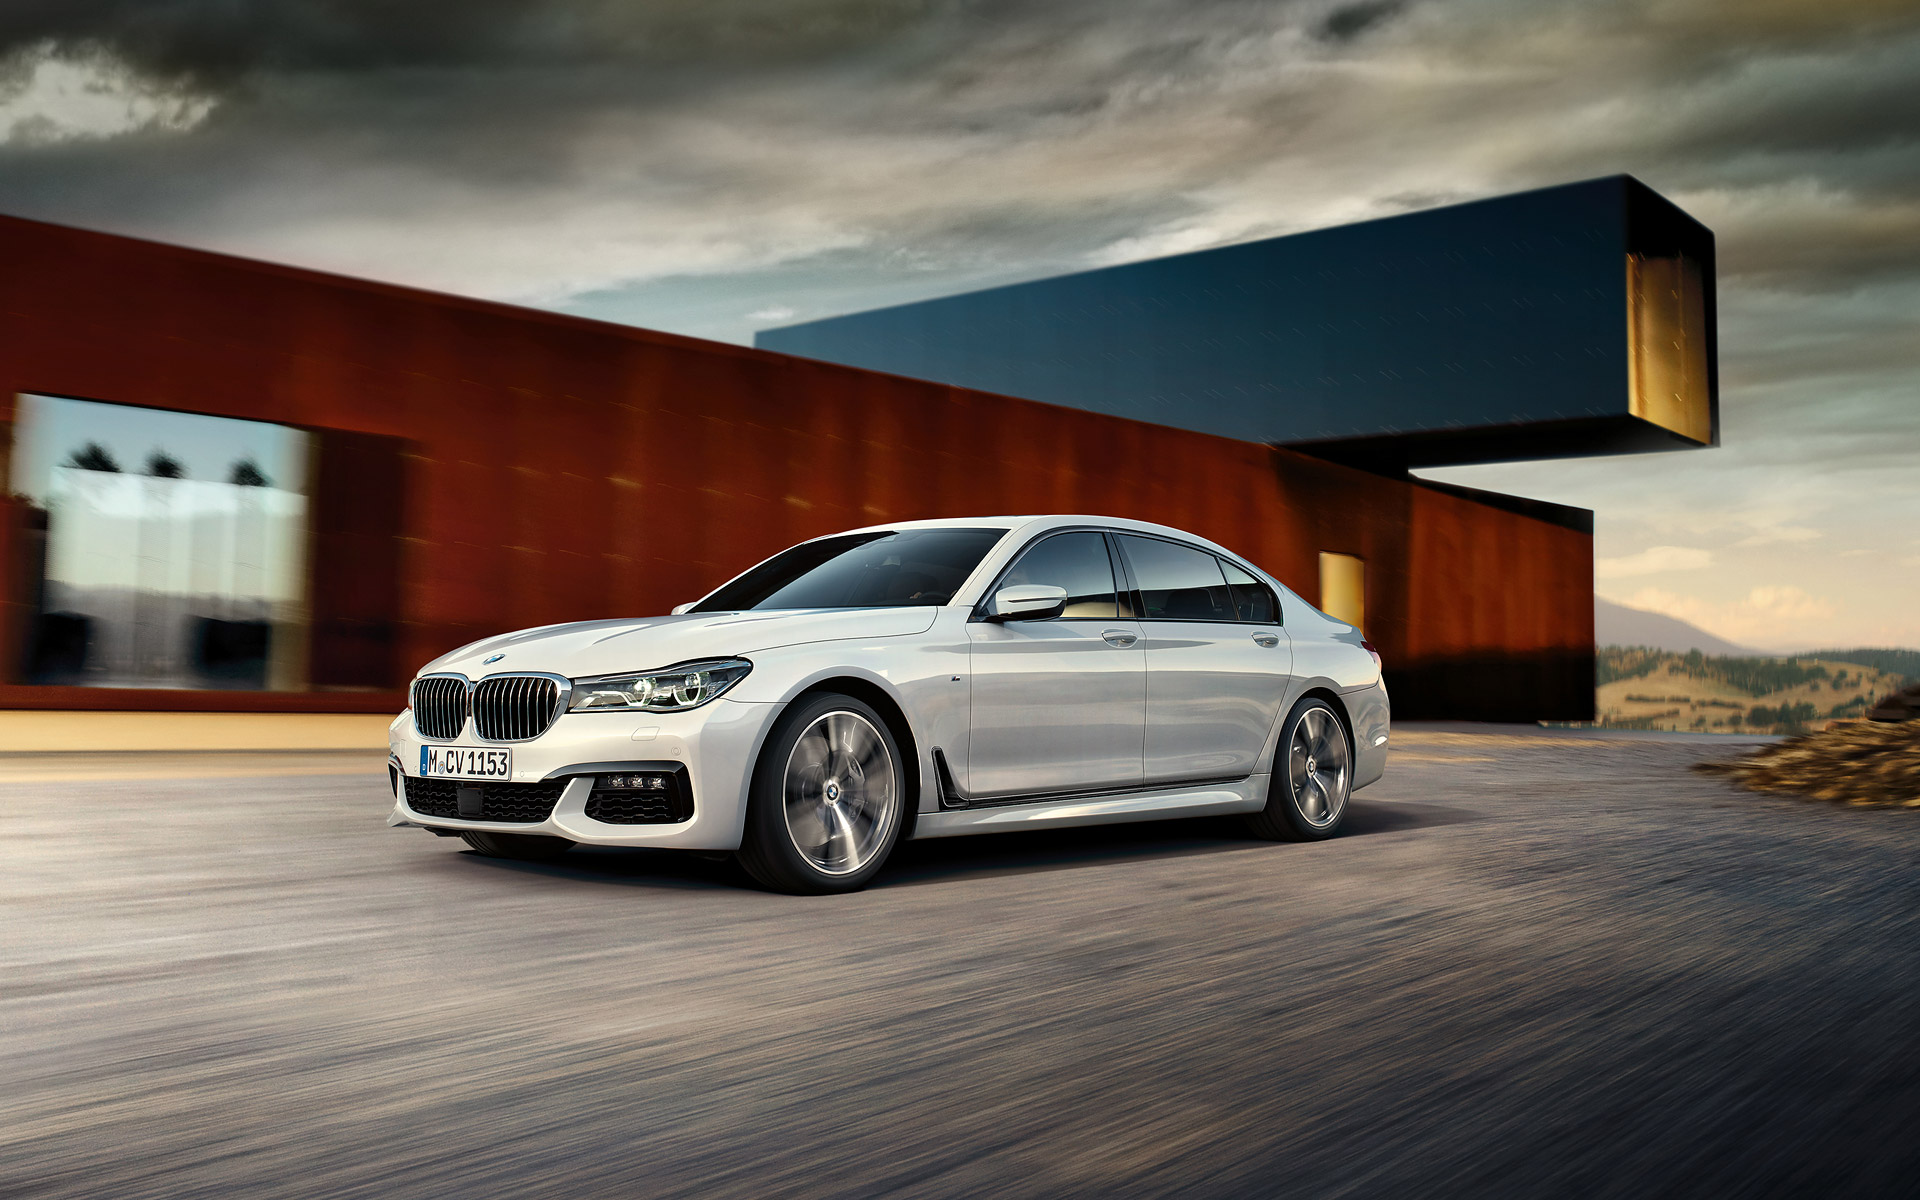 VIDEO GALLERY: 2016 BMW 7 Series